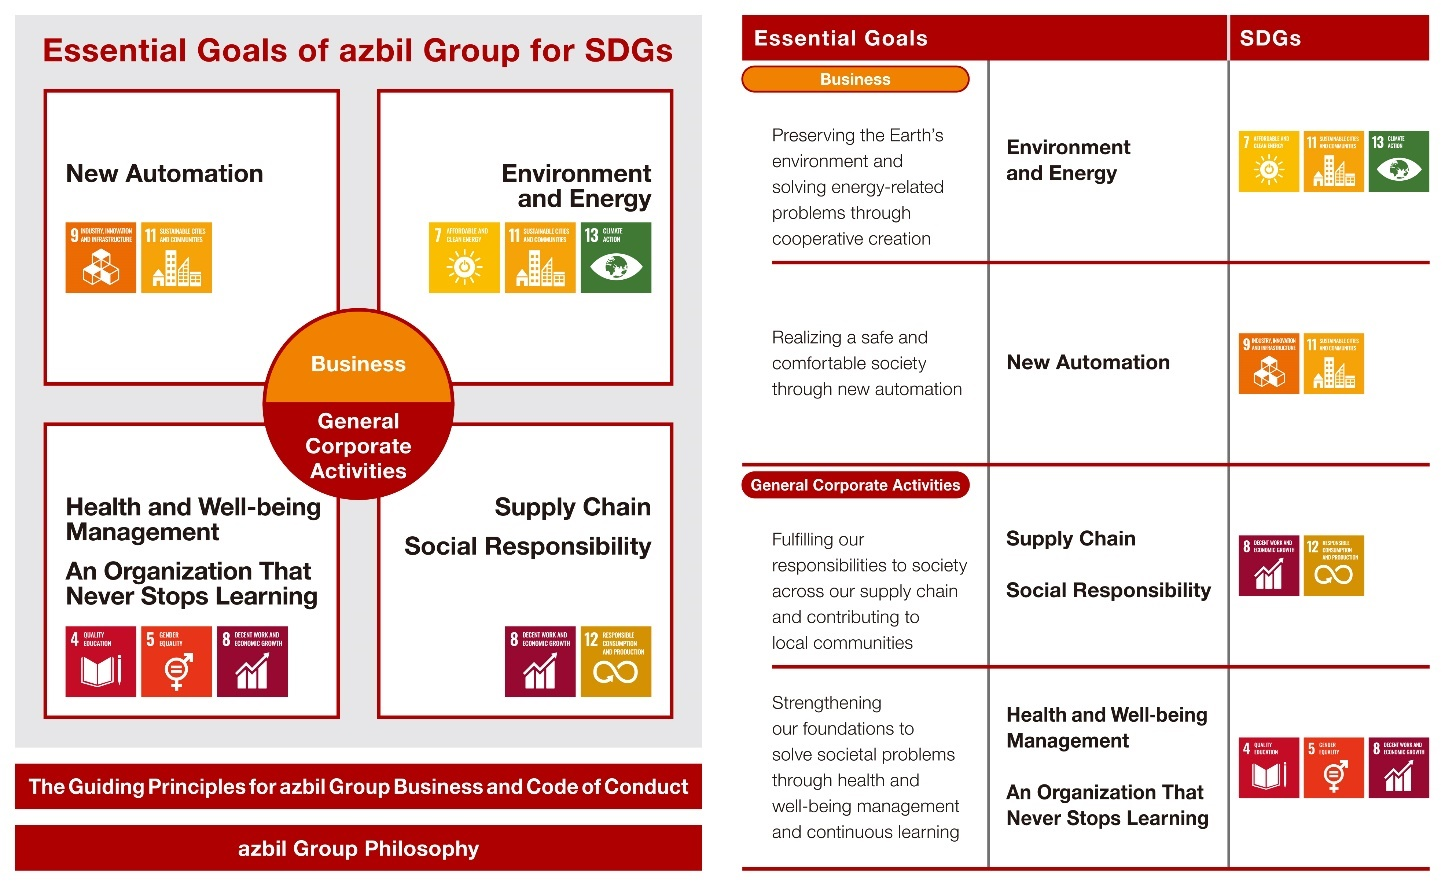 Essential goals of the azbil Group for the SDGs